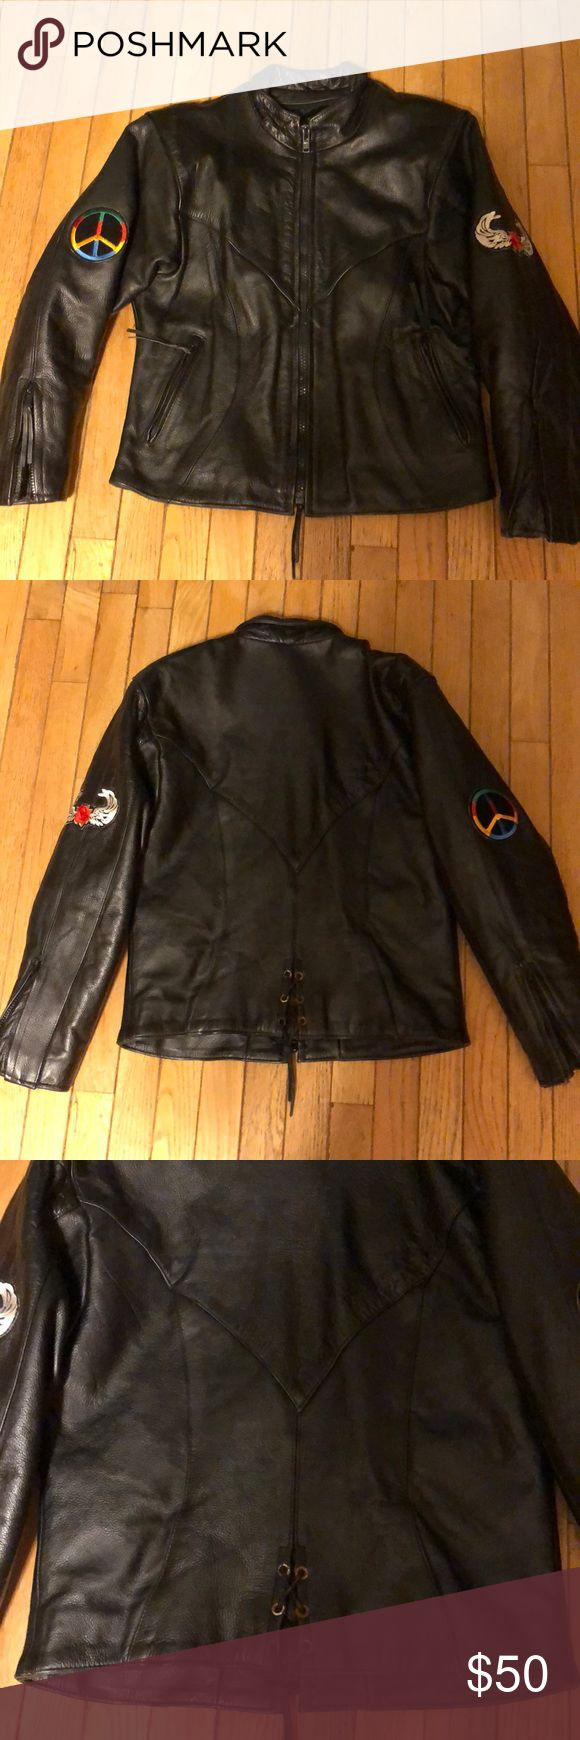 """Genuine Leather Black Leather Biker Jacket M Peace Genuine Leather Black Leather Biker / Motorcycle Jacket. Heavy Duty, fully lined, lacing detail in back, zippers at sleeves, zipper to add an extra lining (although it's extremely heavy already), Patches (peace & wings) professionally sewn on each sleeve by a Leather seamstress. Full zip up. There is no tag for size, but it fits like a medium. In good pre-owned condition. Measures about 19"""" from armpit-armpit, 23.5"""" from shoulder-hem, 21""""…"""